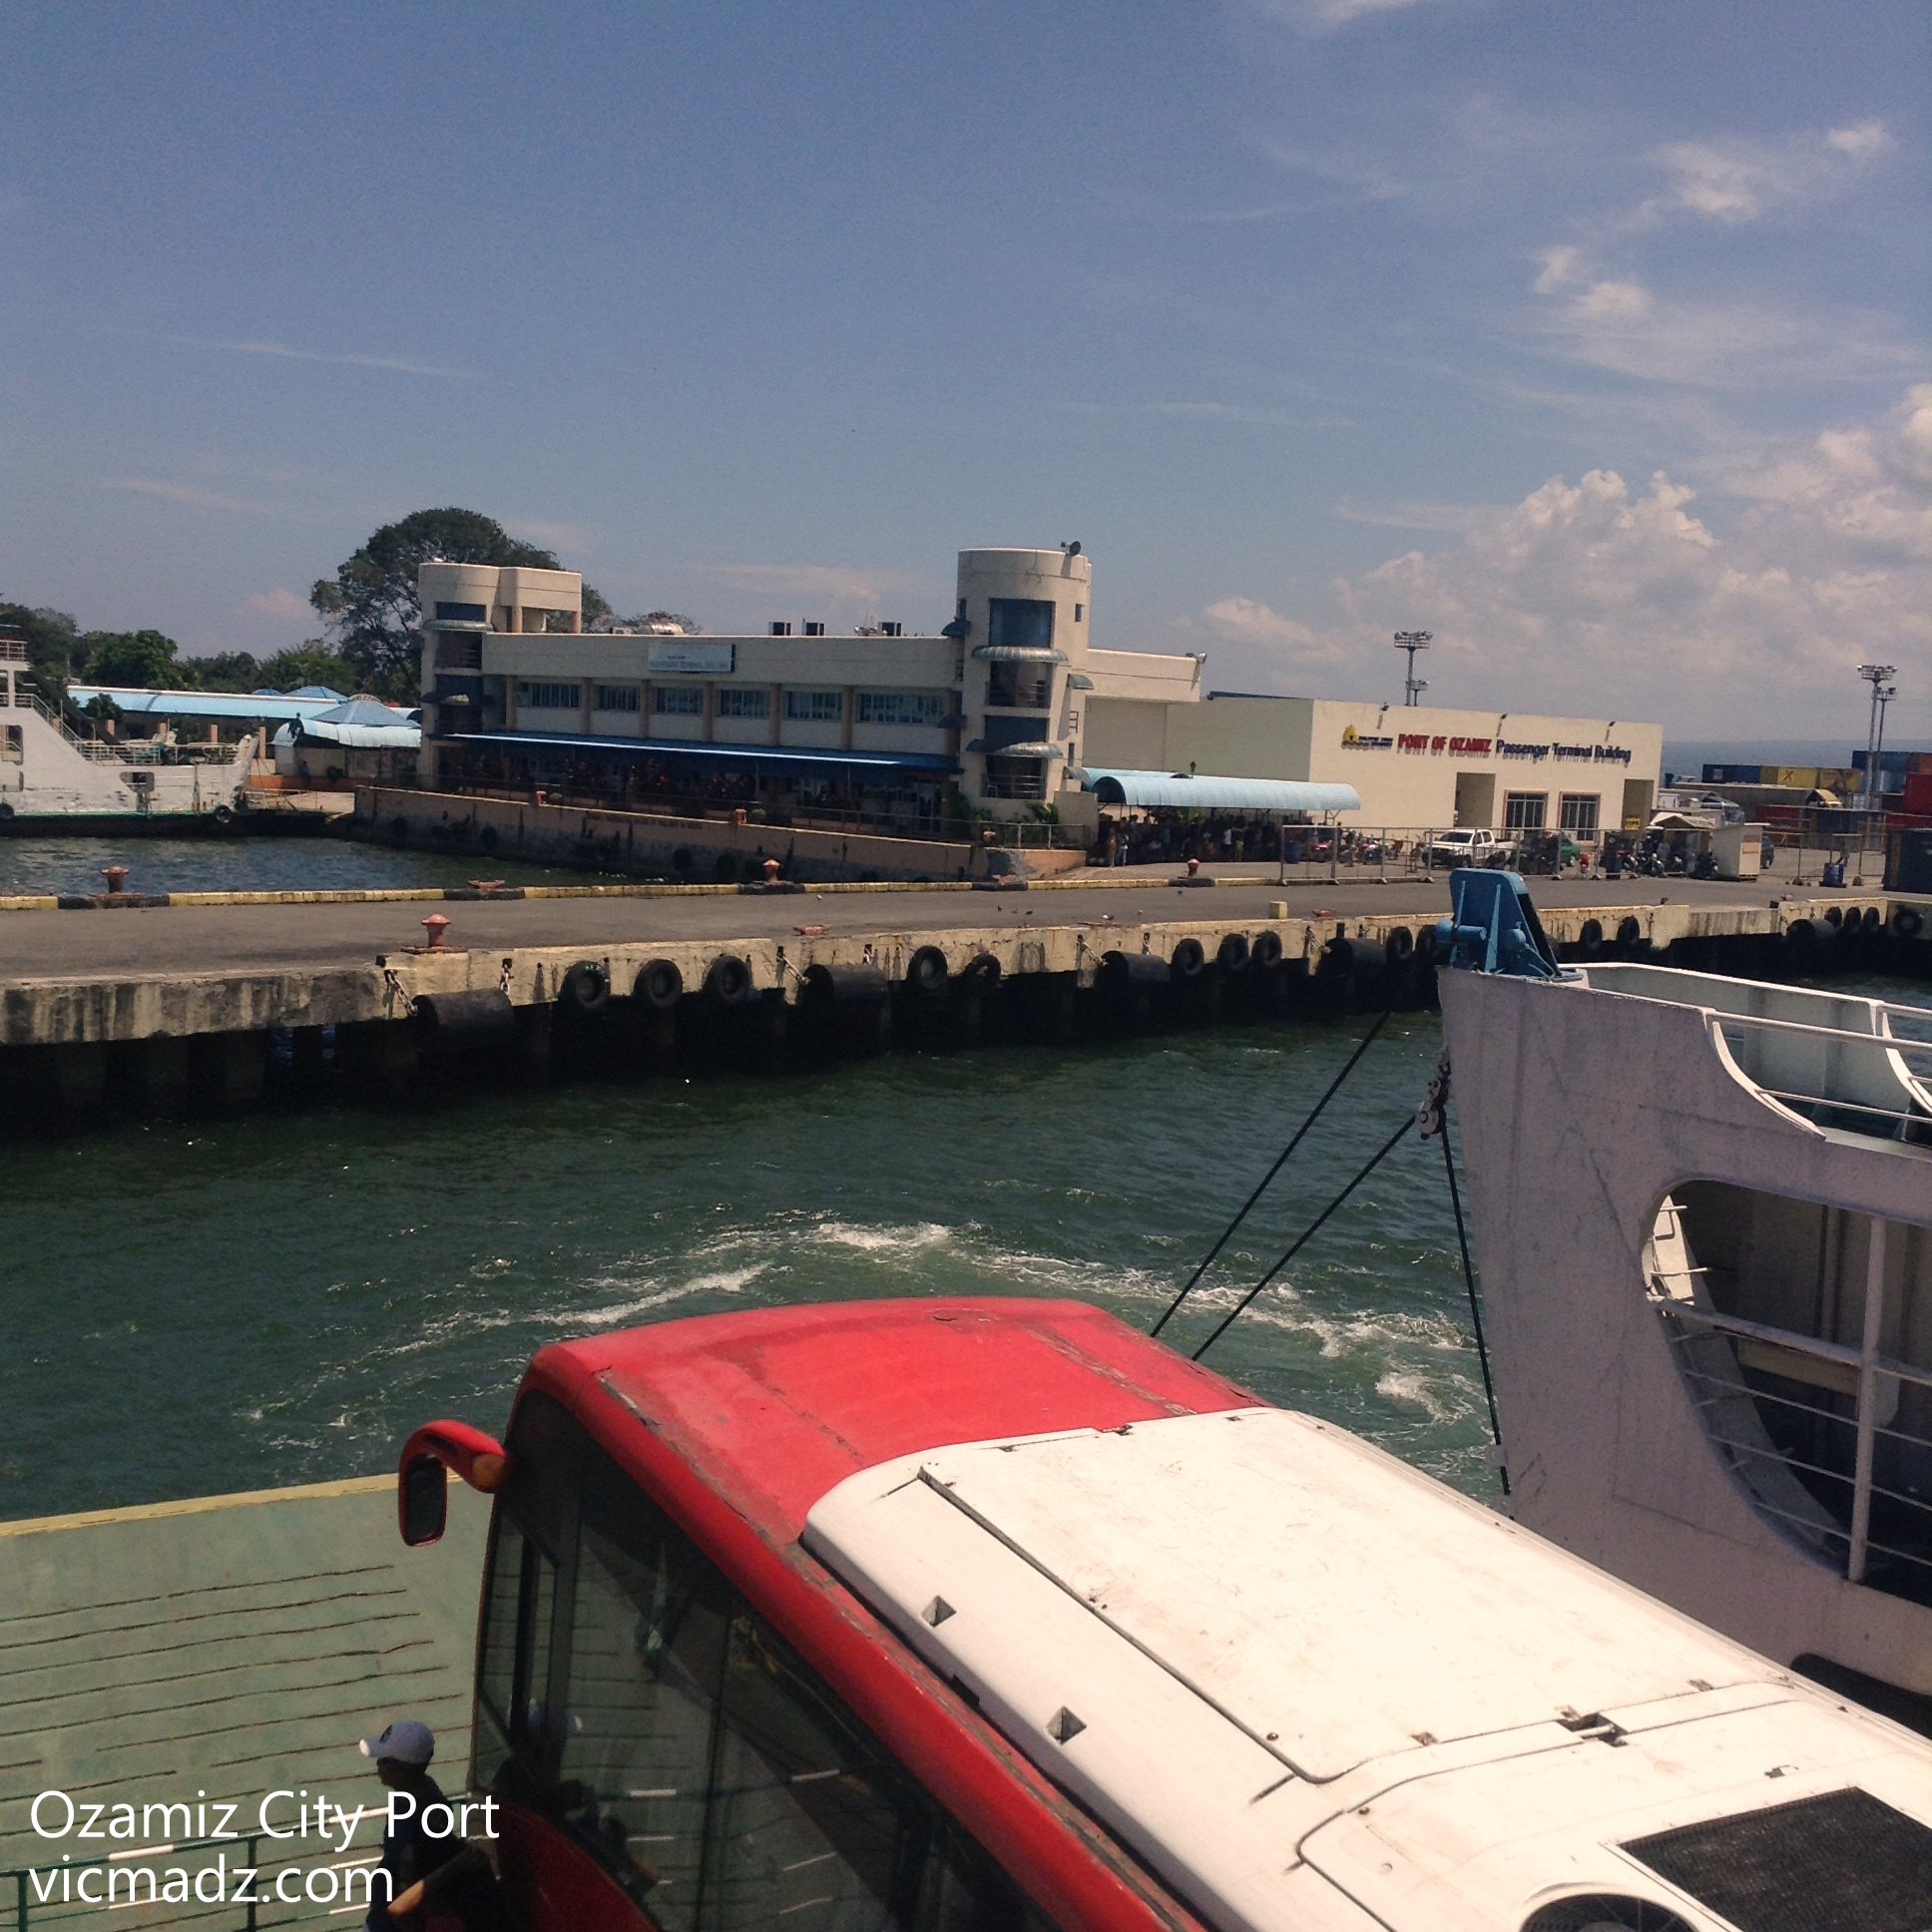 Ozamiz City Port